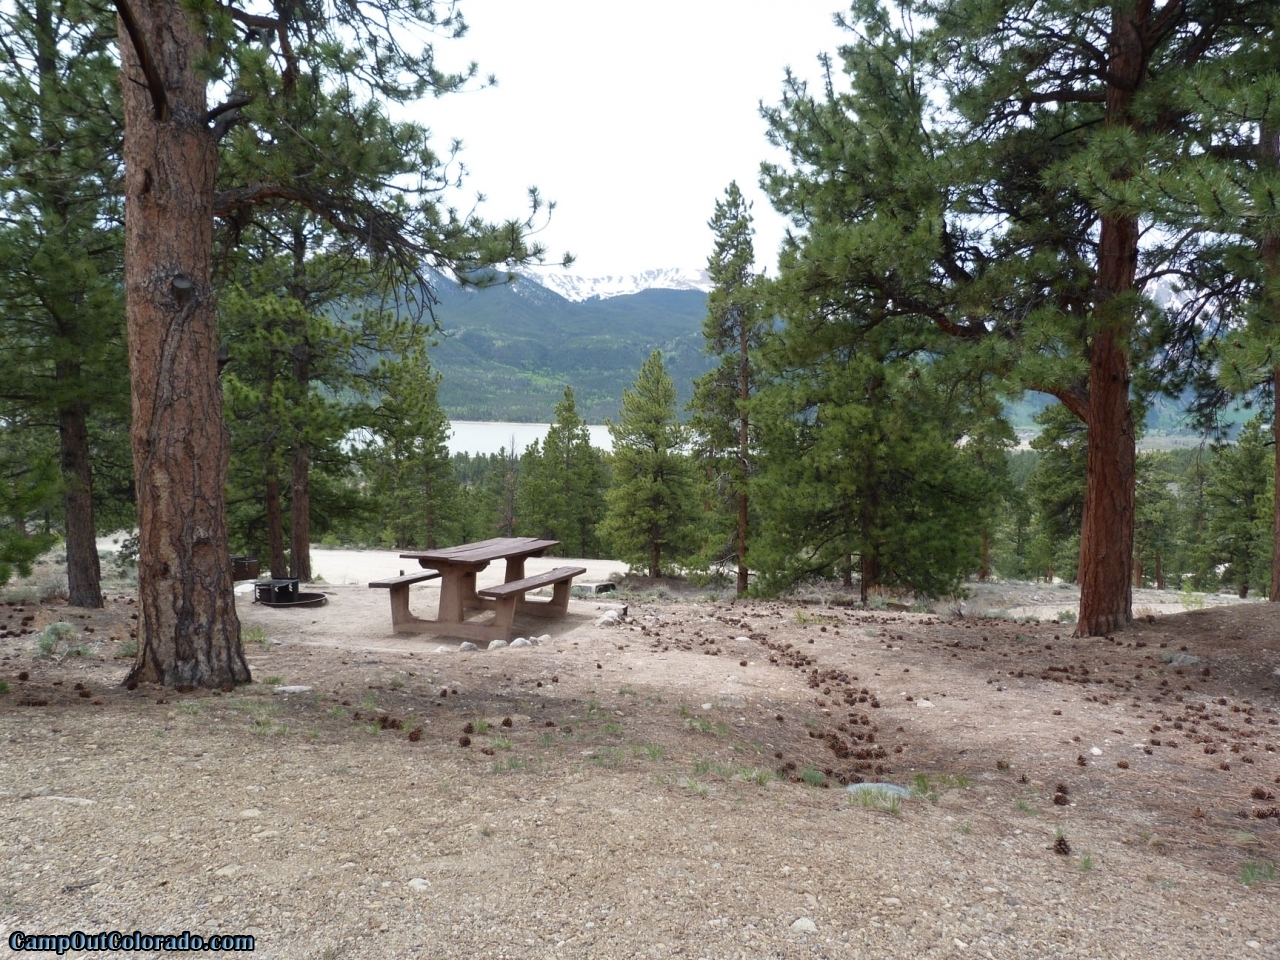 Camping Review of Lakeview Campground